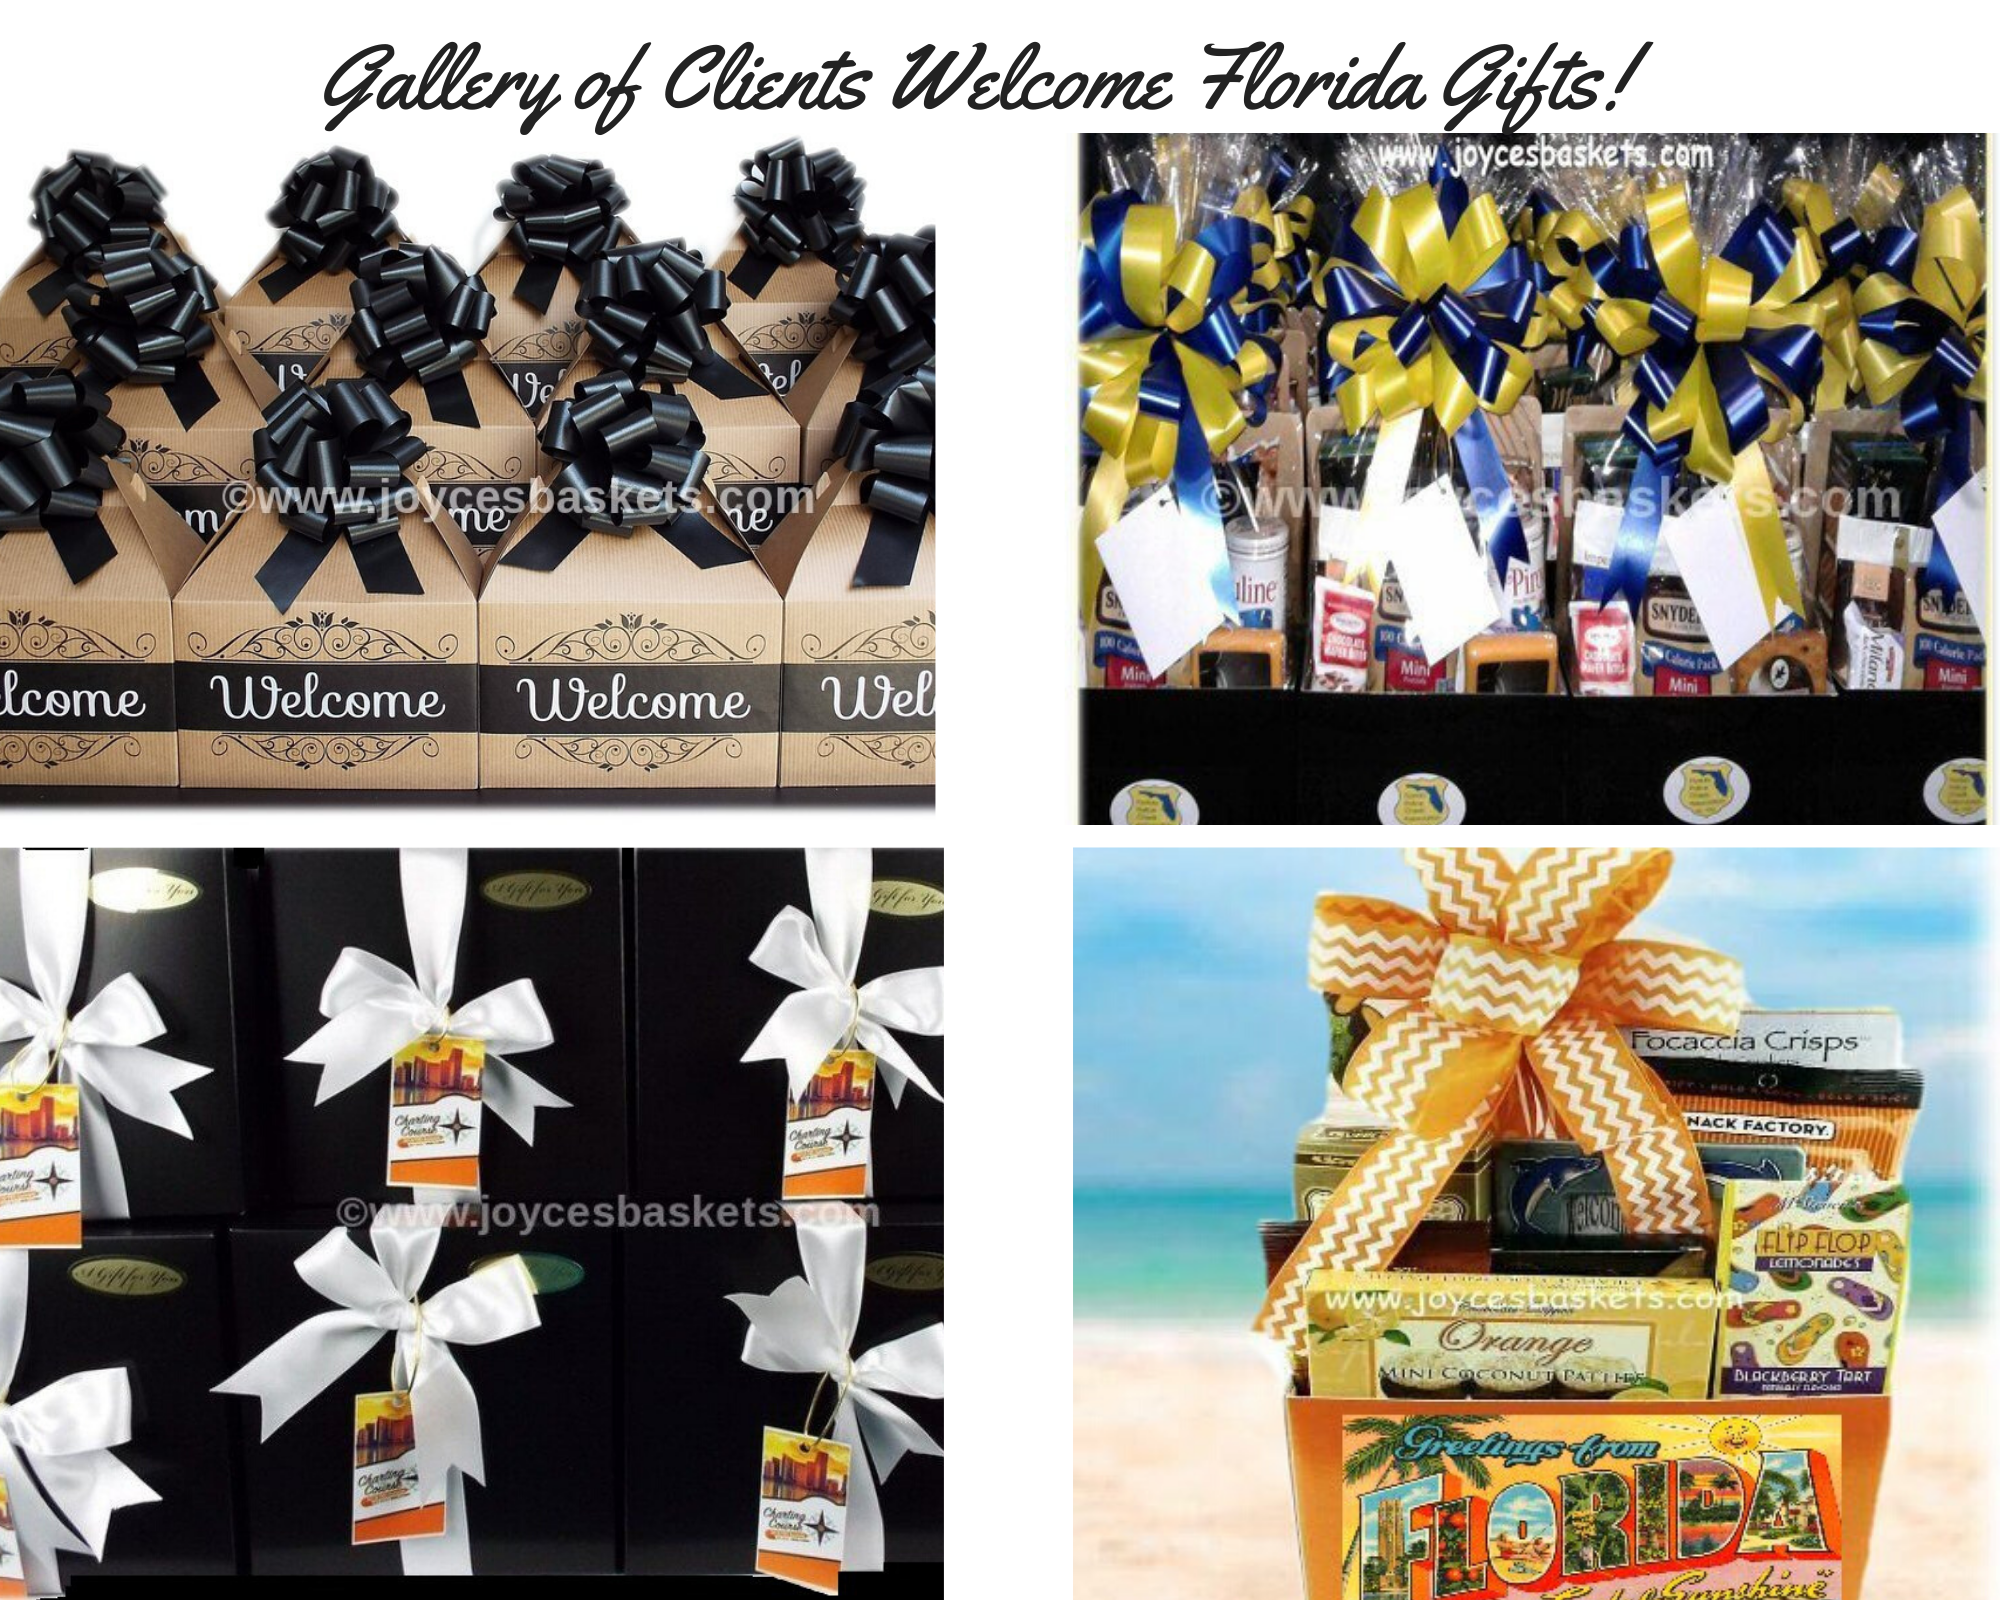 gallery-of-clients-welcome-florida-gifts-2-.png